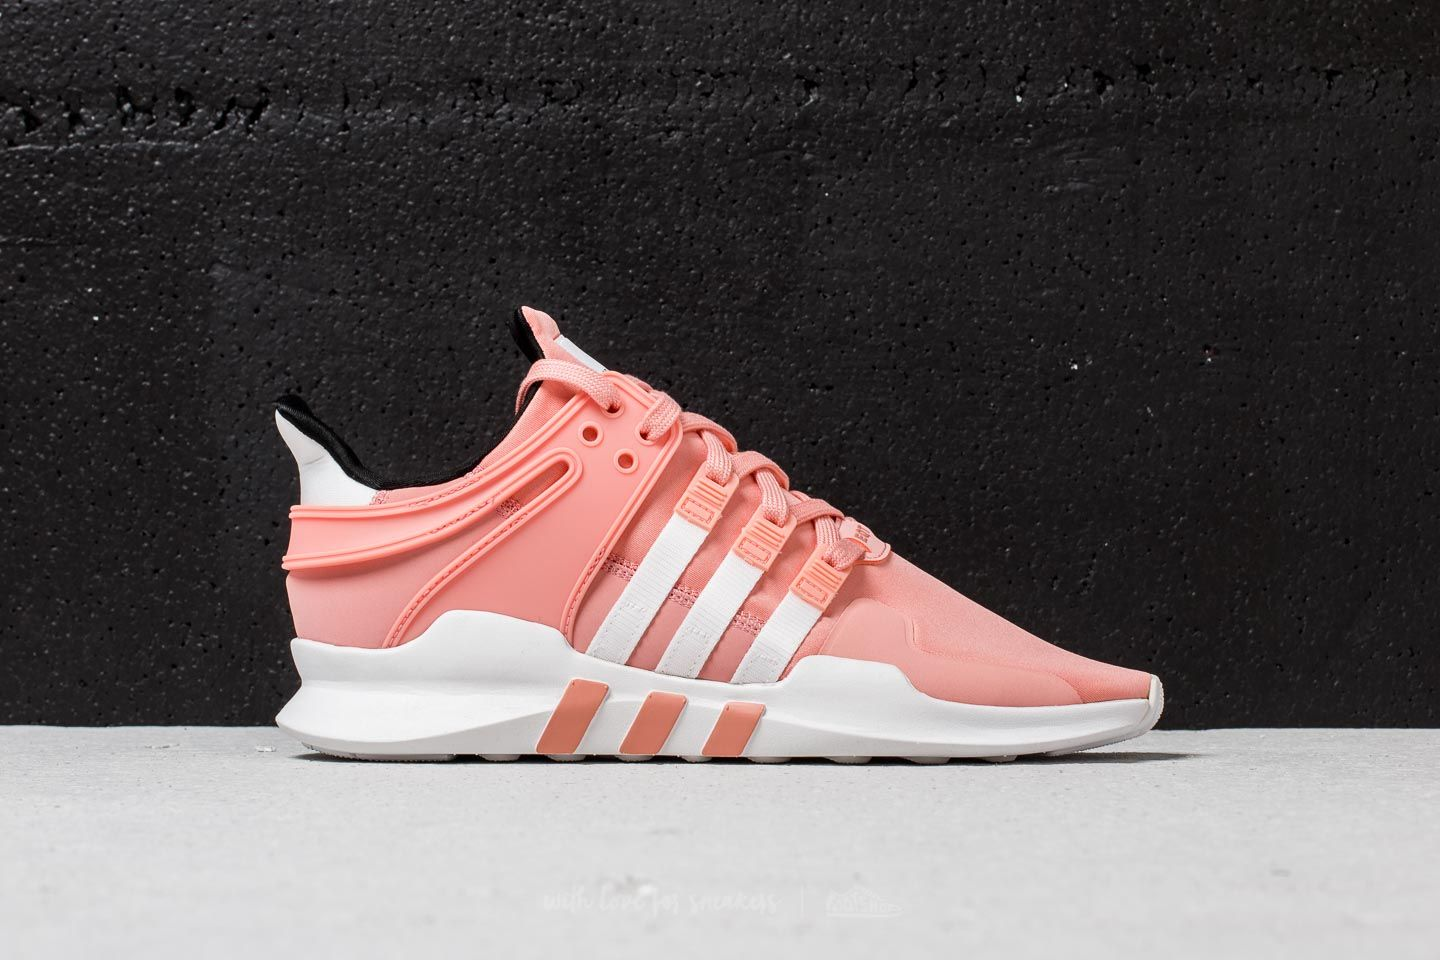 innovative design 5dc3f c3c3b discount code for adidas eqt support pink 75d5e f2e69